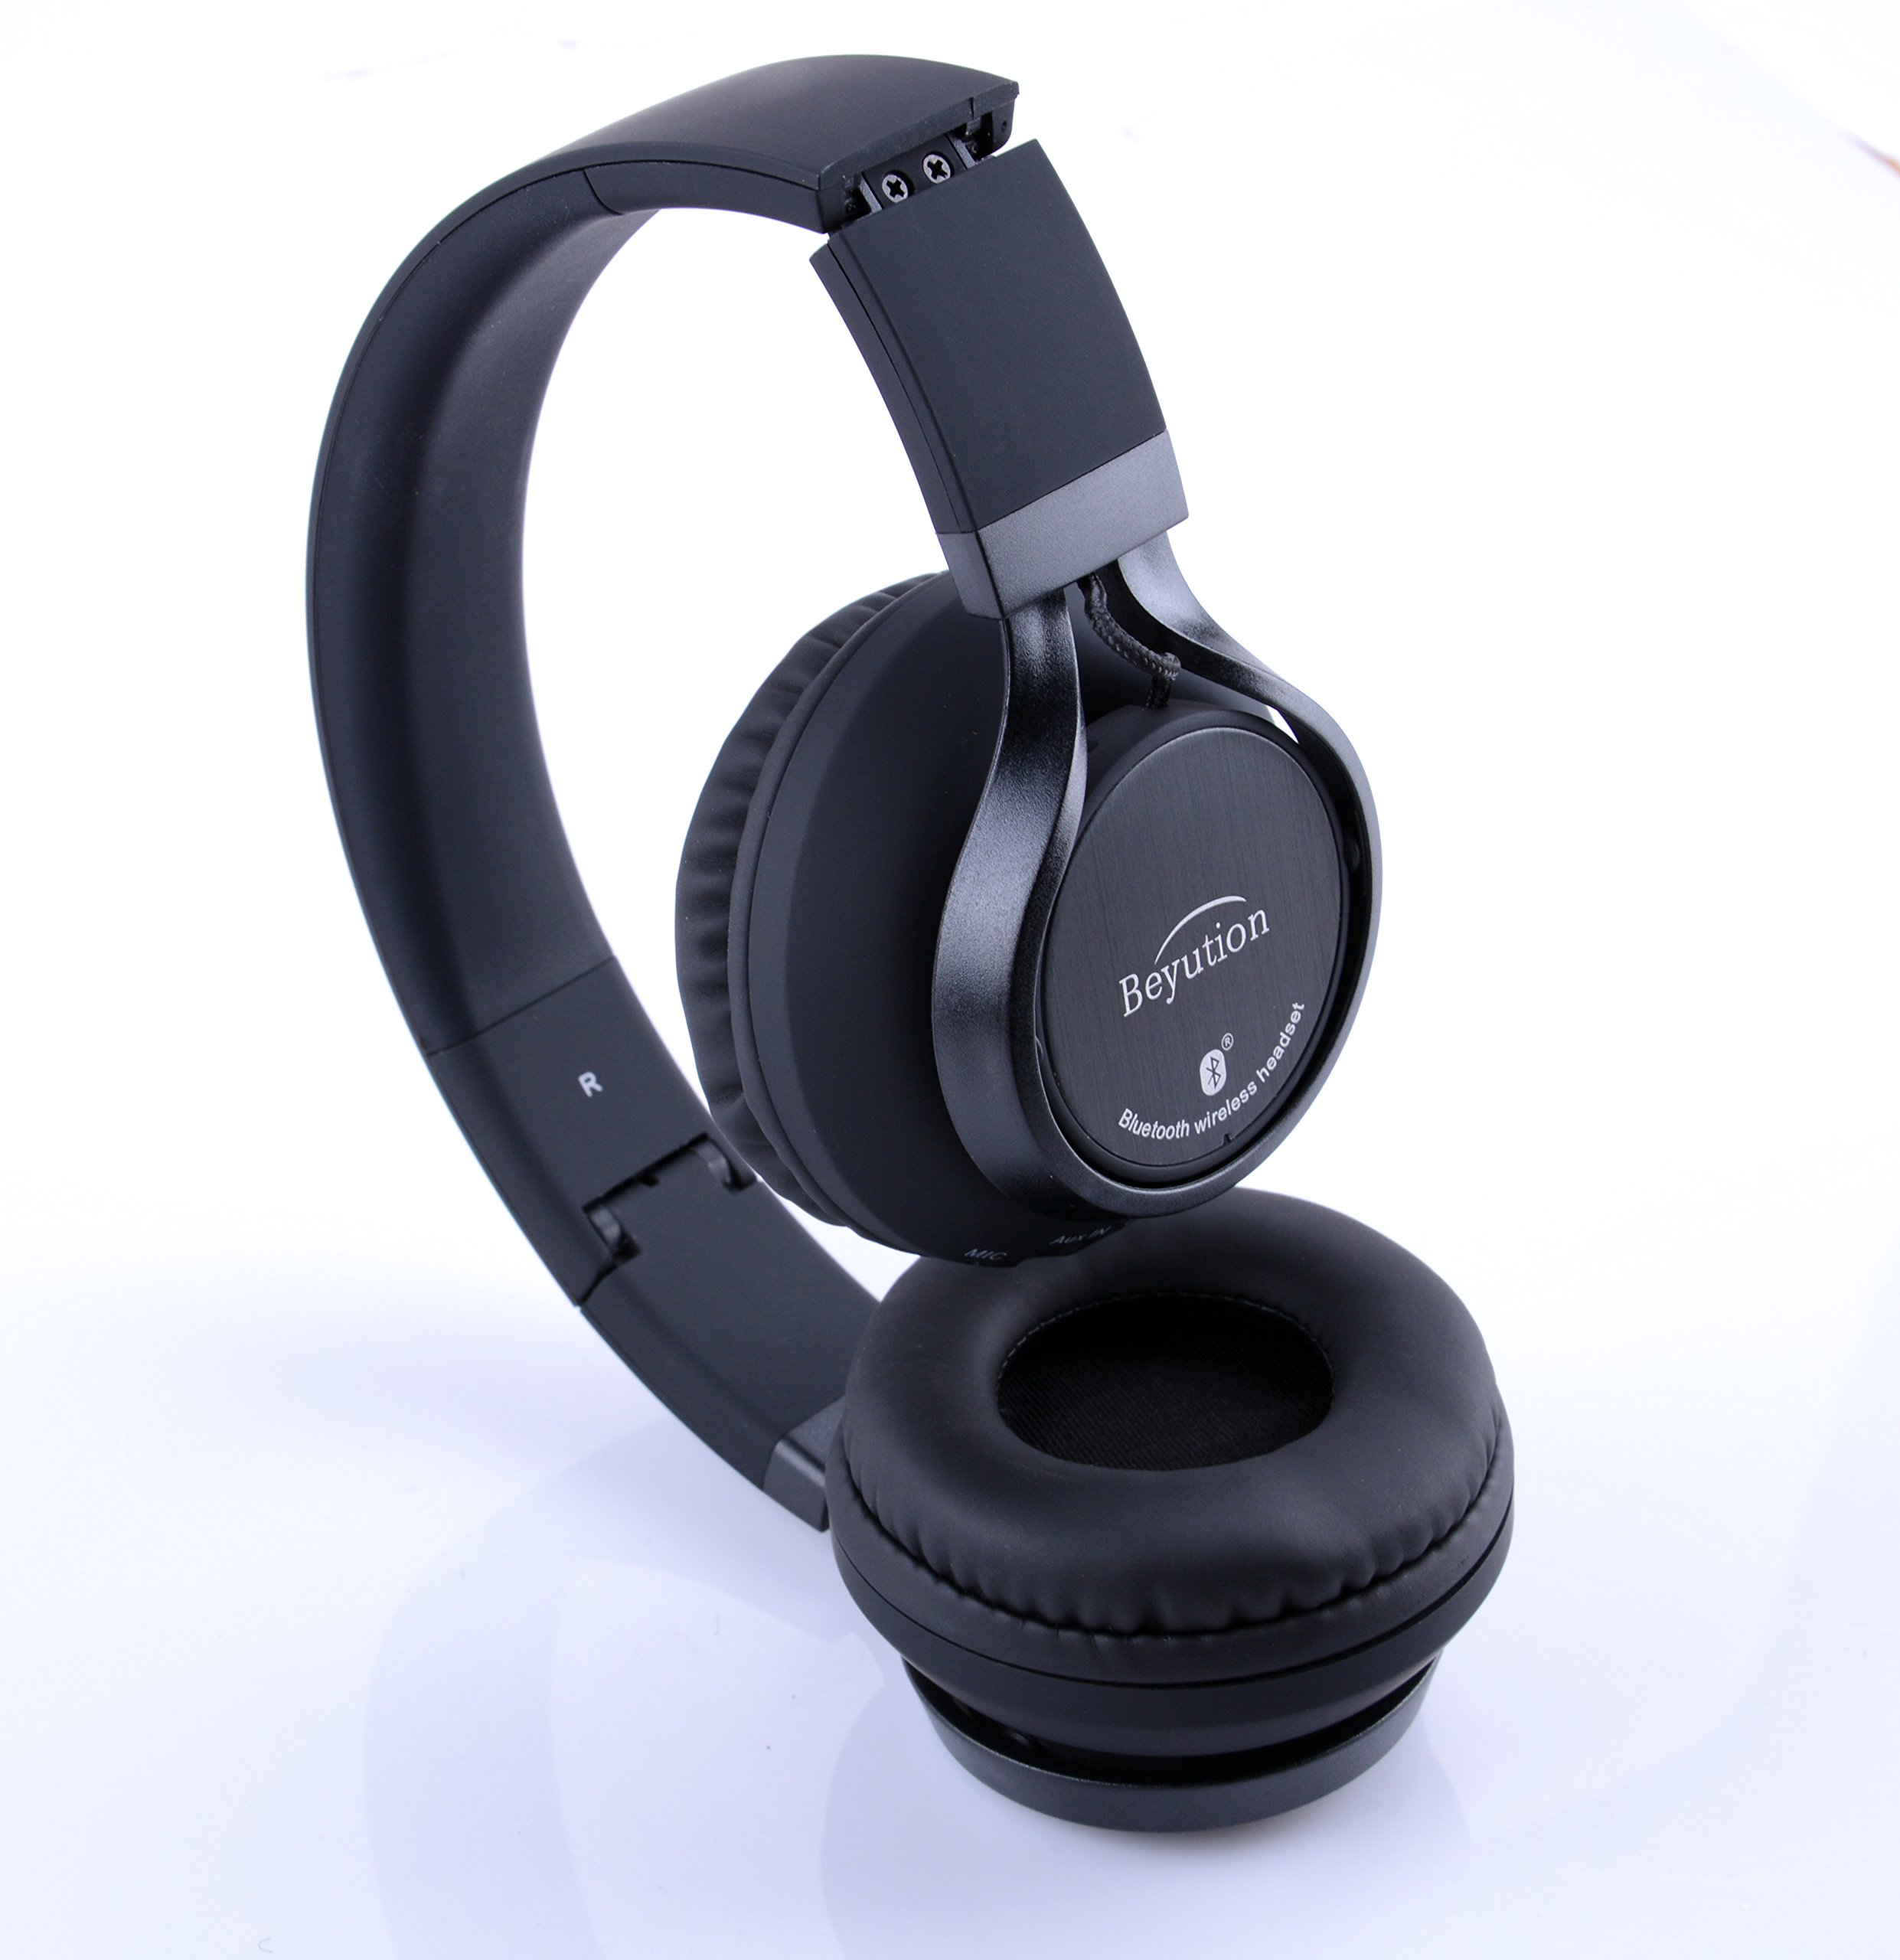 Beyution Black Metal Wireless Bluetooth Headsets Over Ear Bluetooth Headphones with Mic for iPhone 8 X Samsung Smart Phones and All Tablet Laptop with Bluetooth Funcstion (BT525-Black-Metal) by Beyution (Image #9)